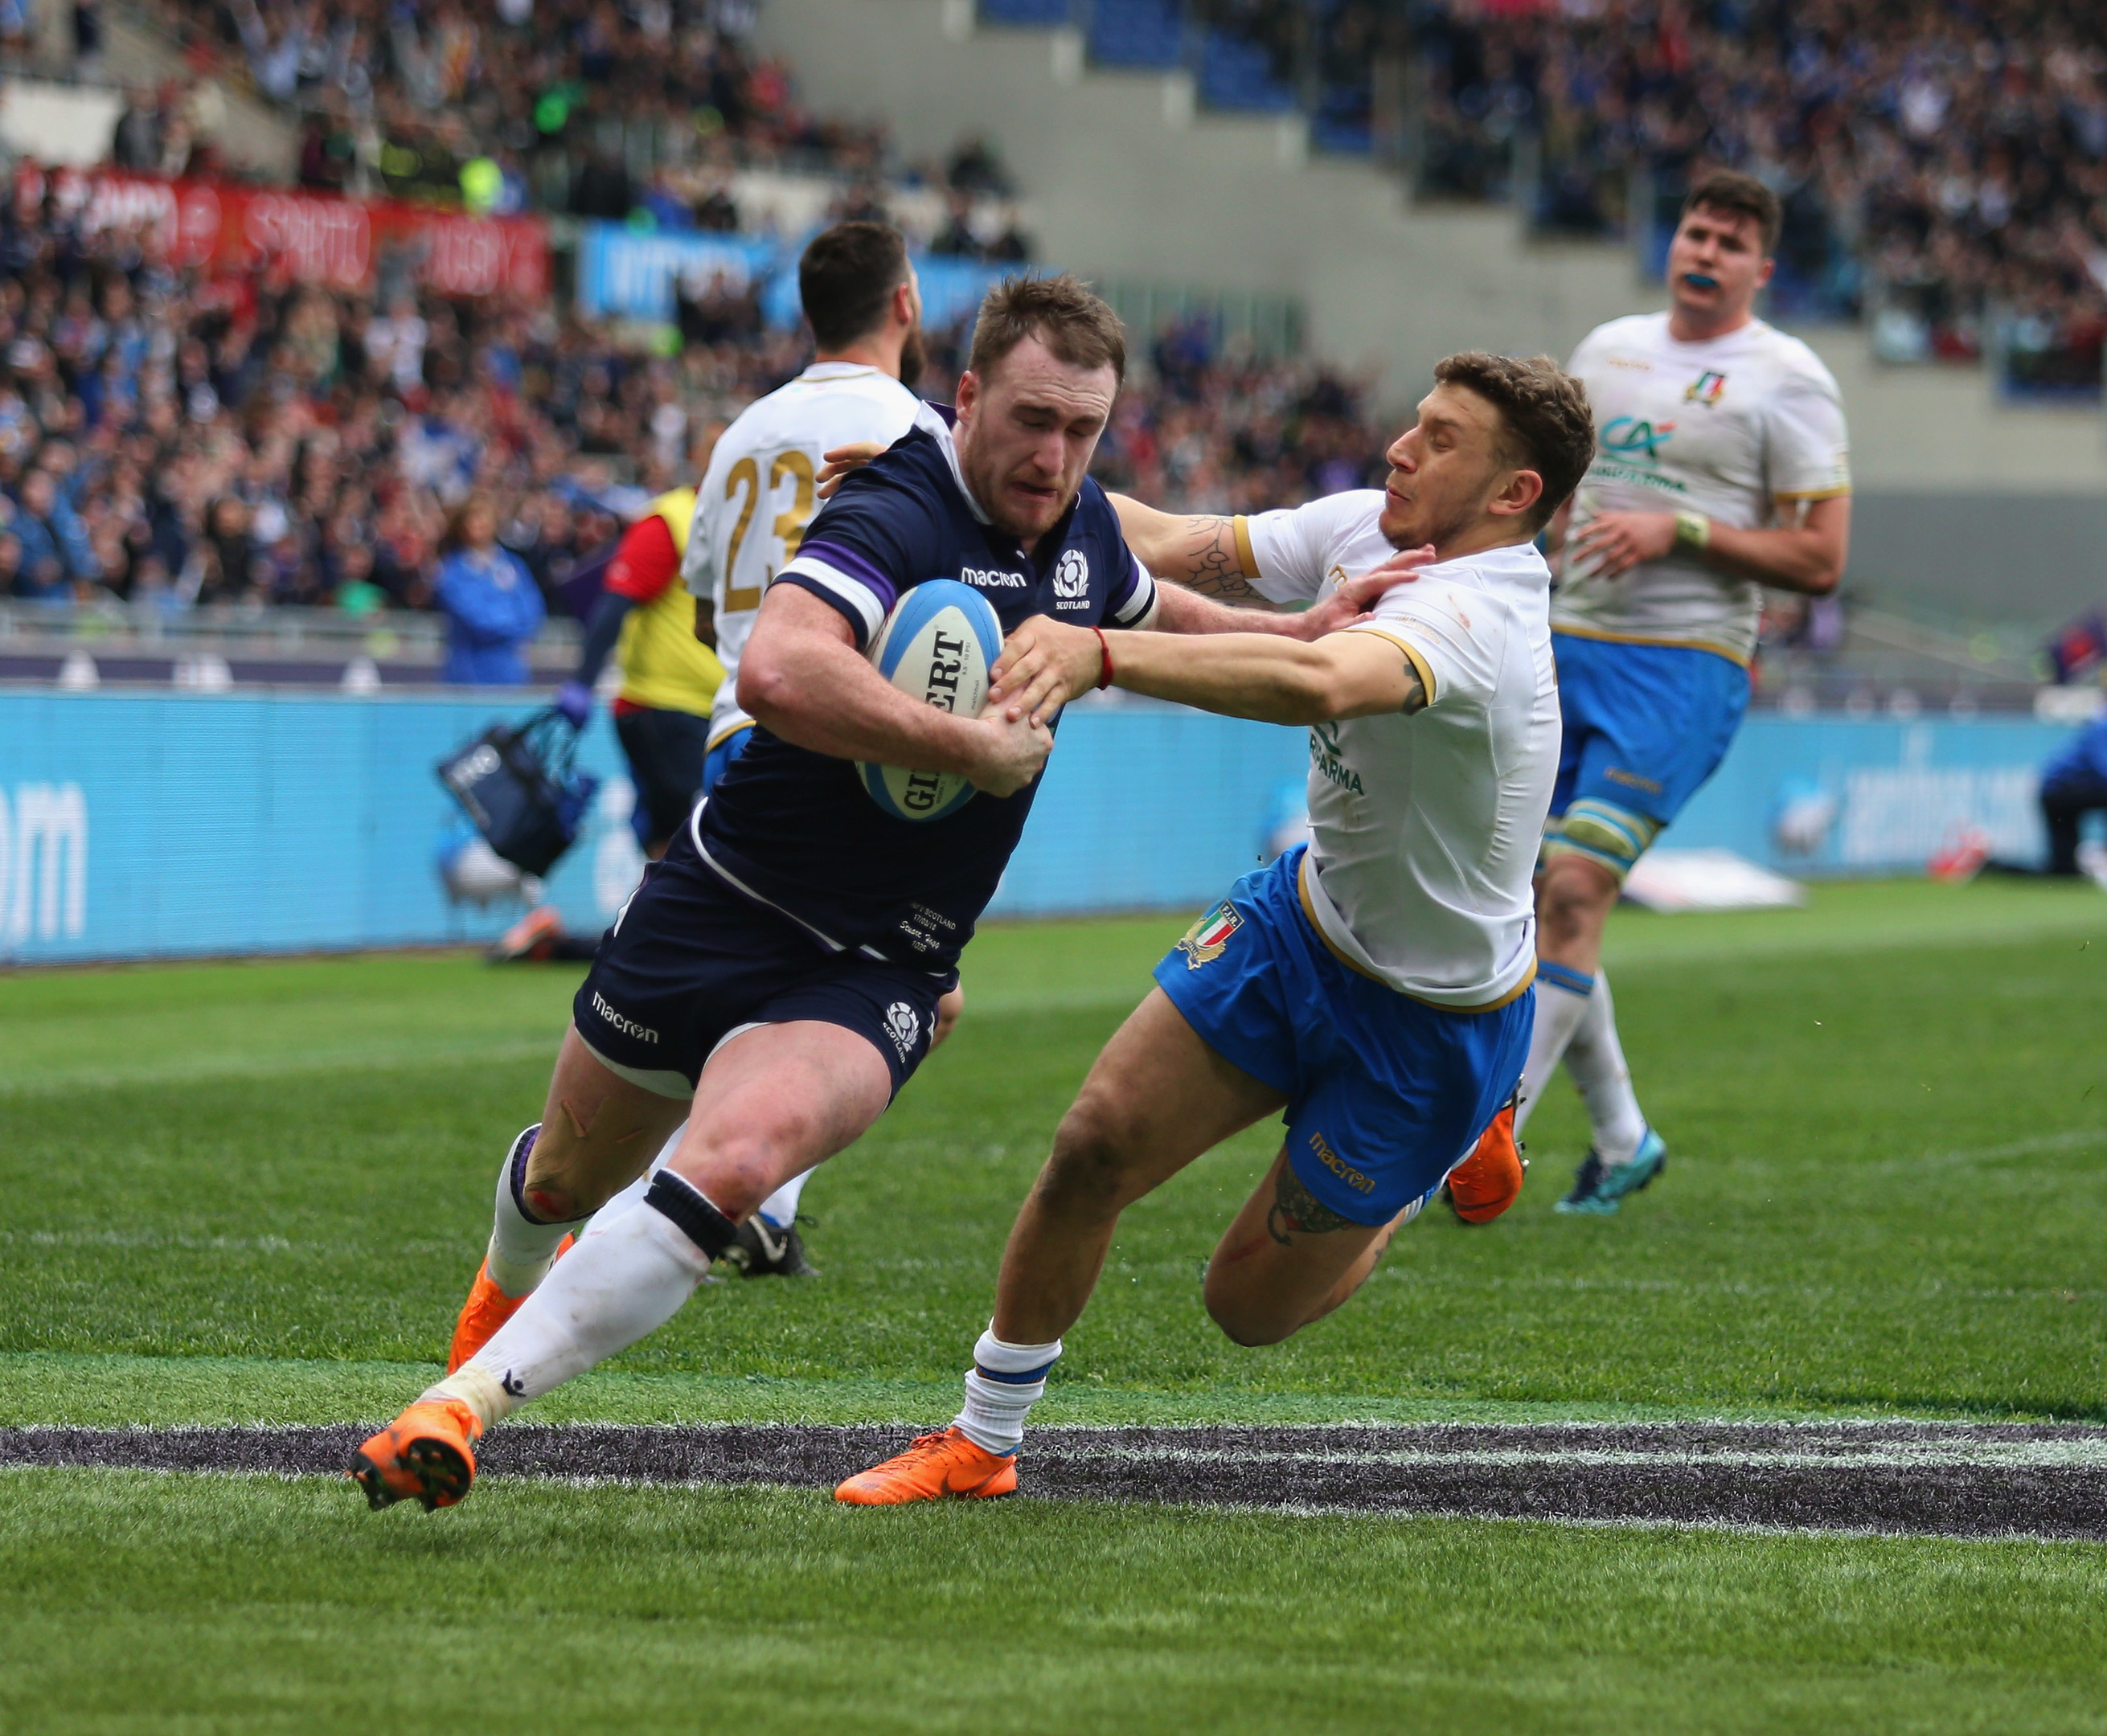 Stuart Hogg scores the Scotland's fourth try against Italy in Rome.